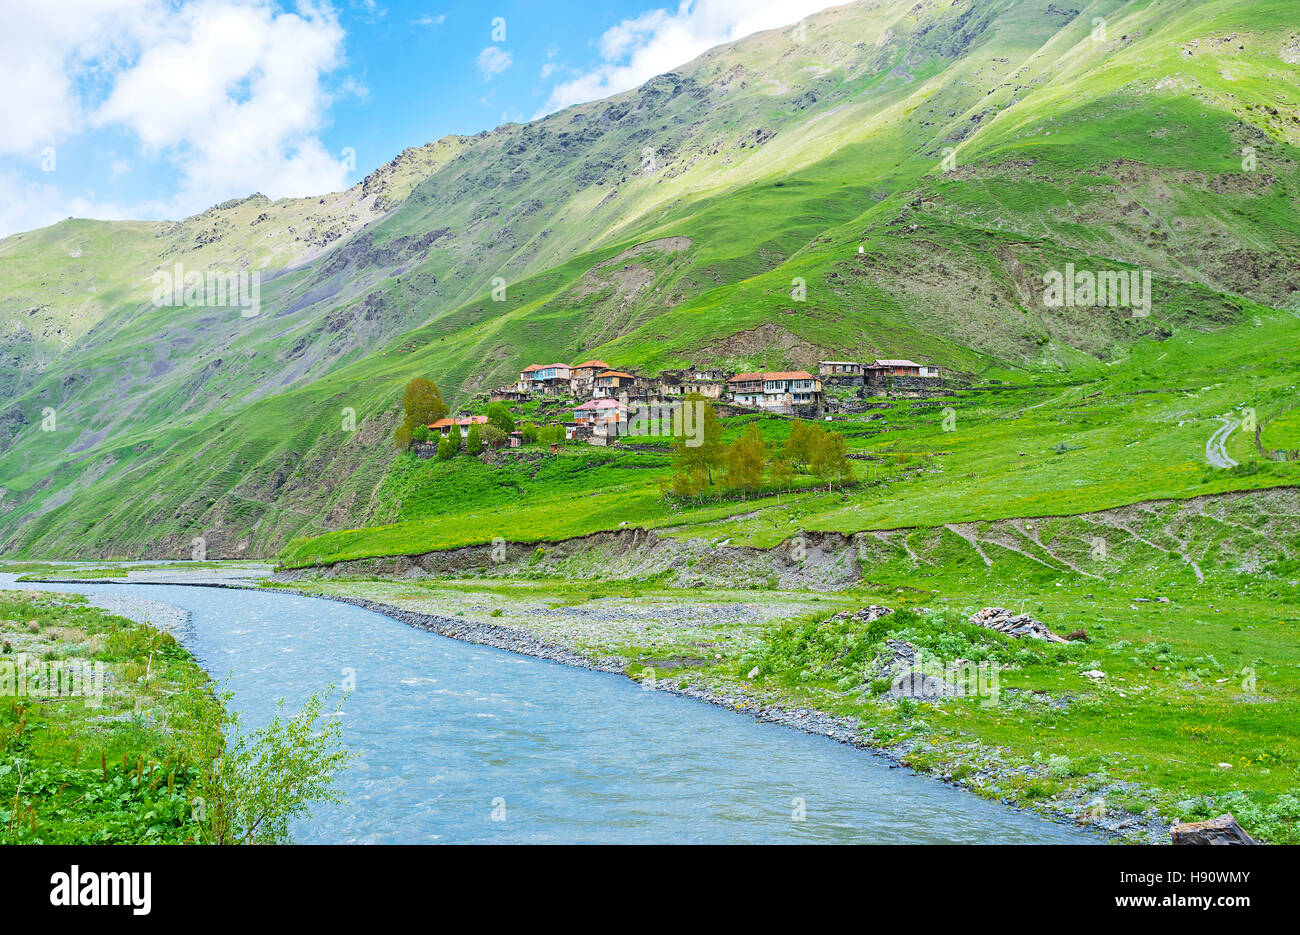 The colorful houses of Akhaltsikhe village on the green slope, by the Snostskali river, Sno Gorge, Georgia. - Stock Image